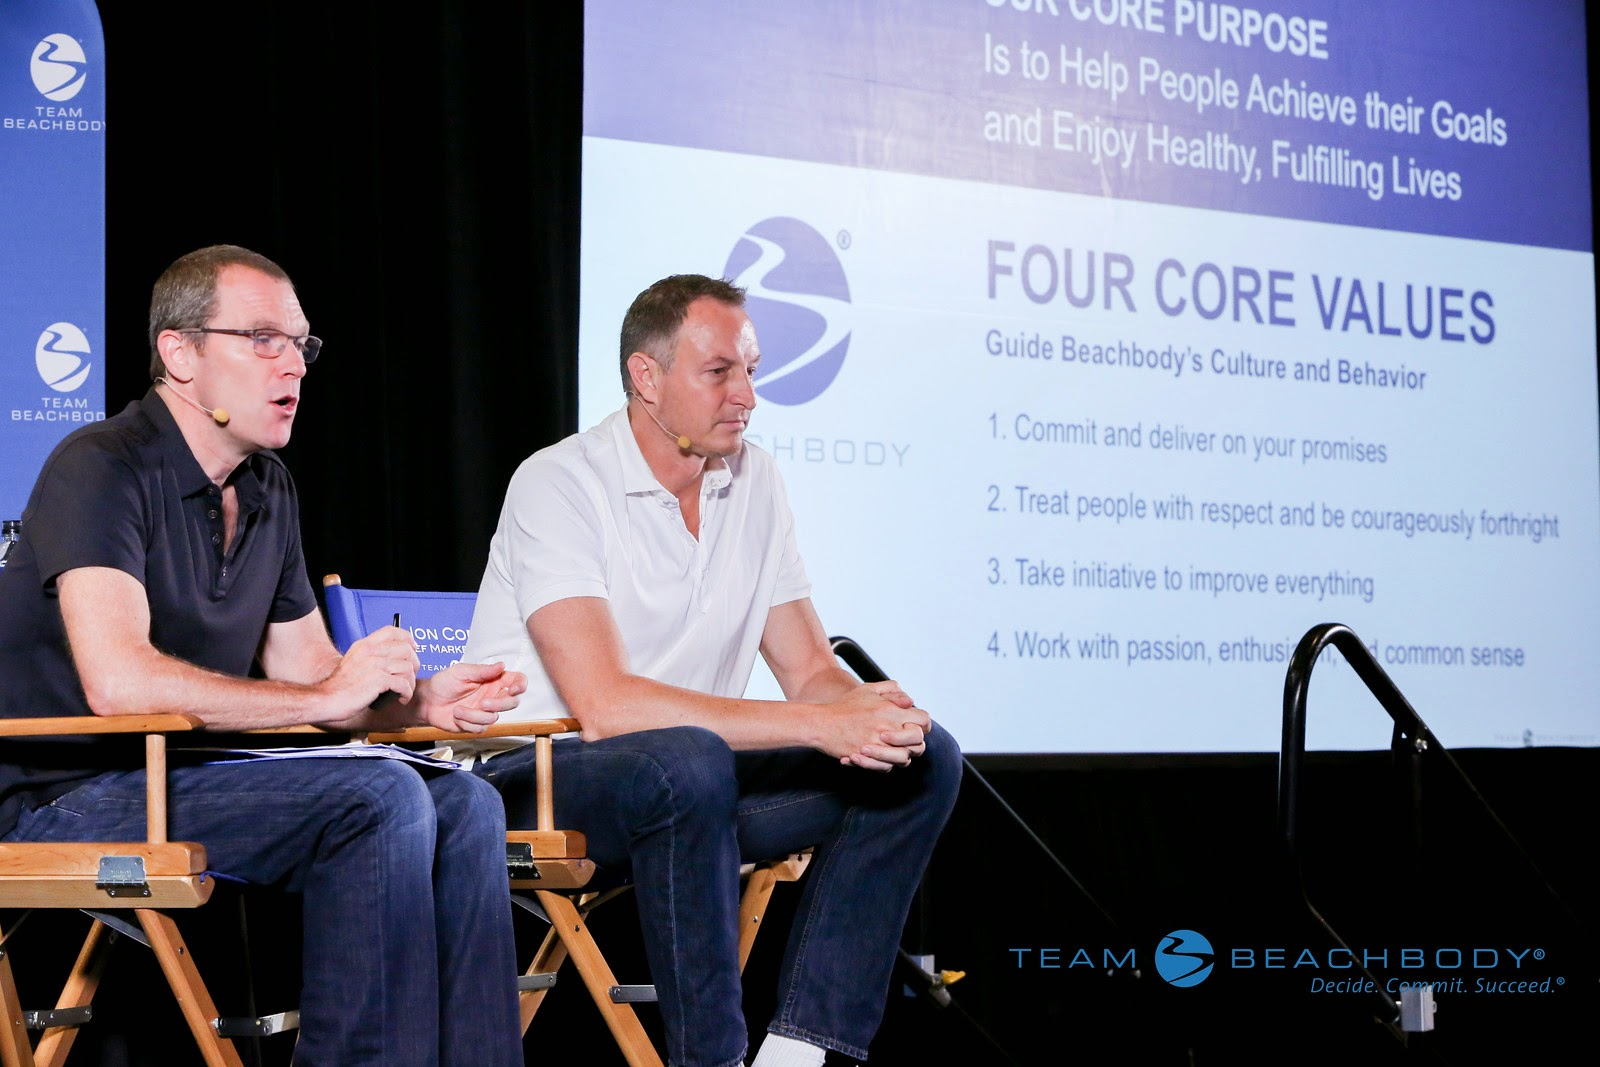 Carl Dailkeler, Jon Congdon, CEO Beachbody, home fitness programs, team beachbody workouts, Deidra Penrose, weight loss programs, diet, 30 min workout, fitness motivation, inspiration, Team beachbody leadership retreat